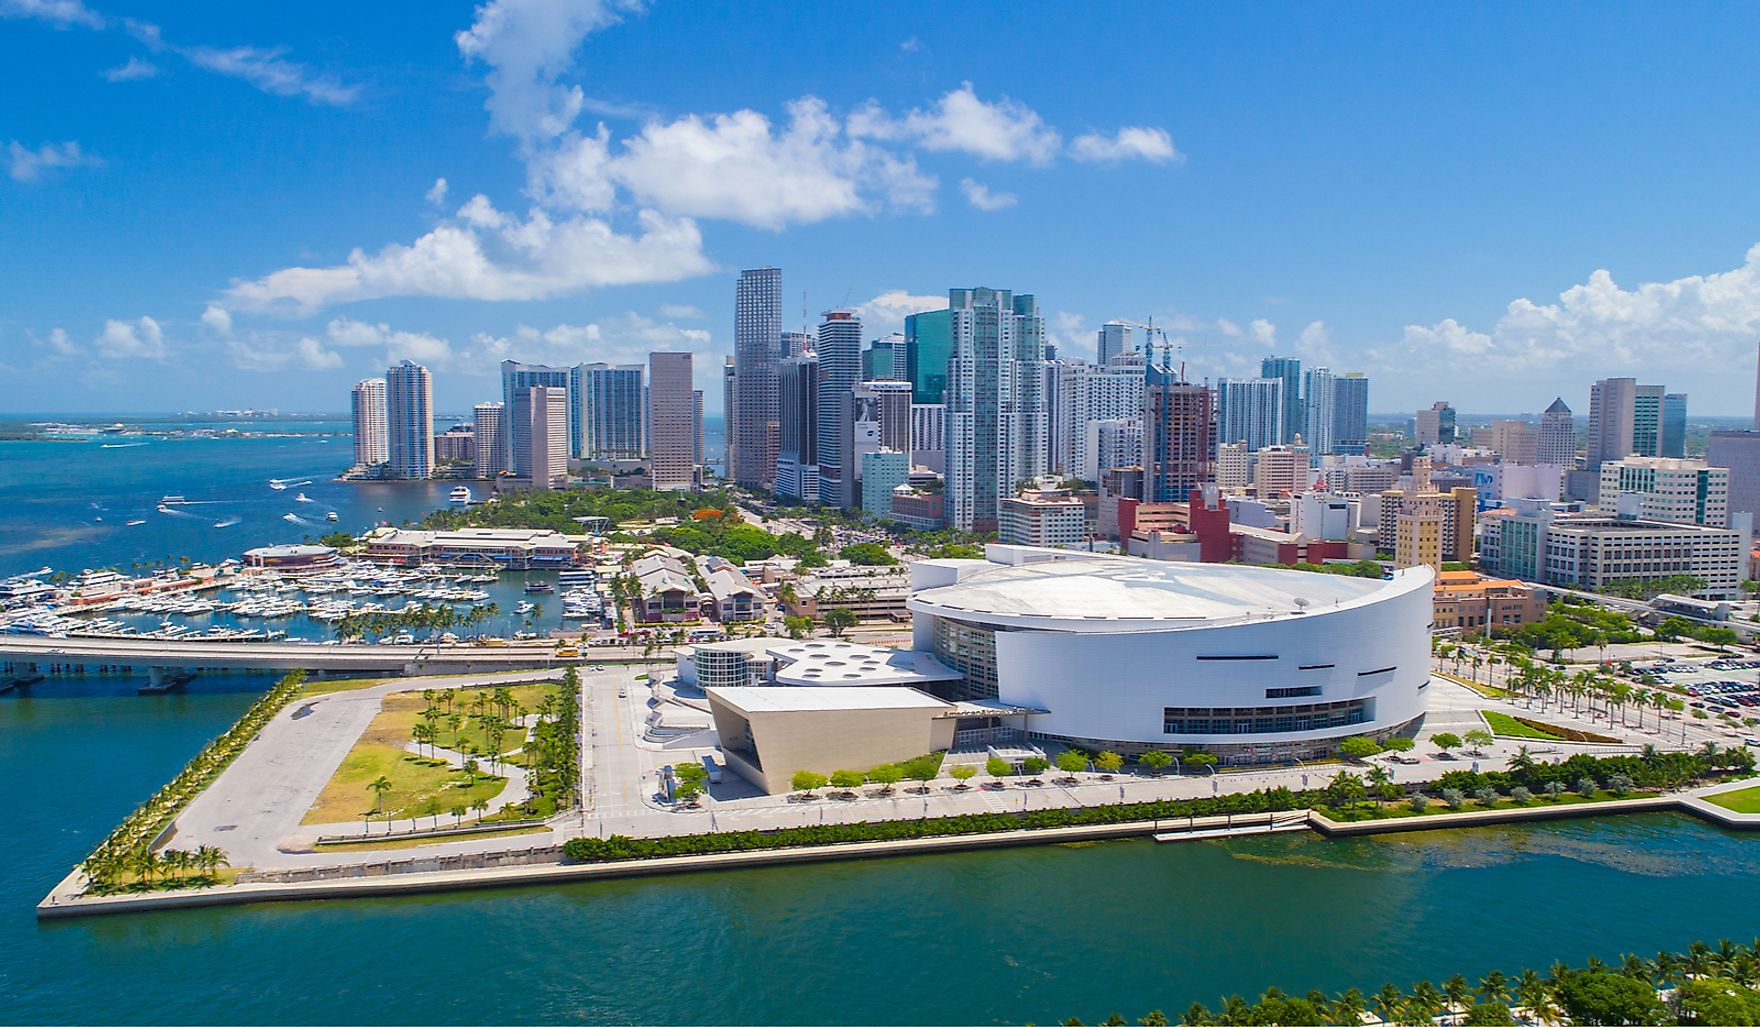 Aerial view of Downtown Miami, Florida. USA, one of the most expensive destinations in the USA.